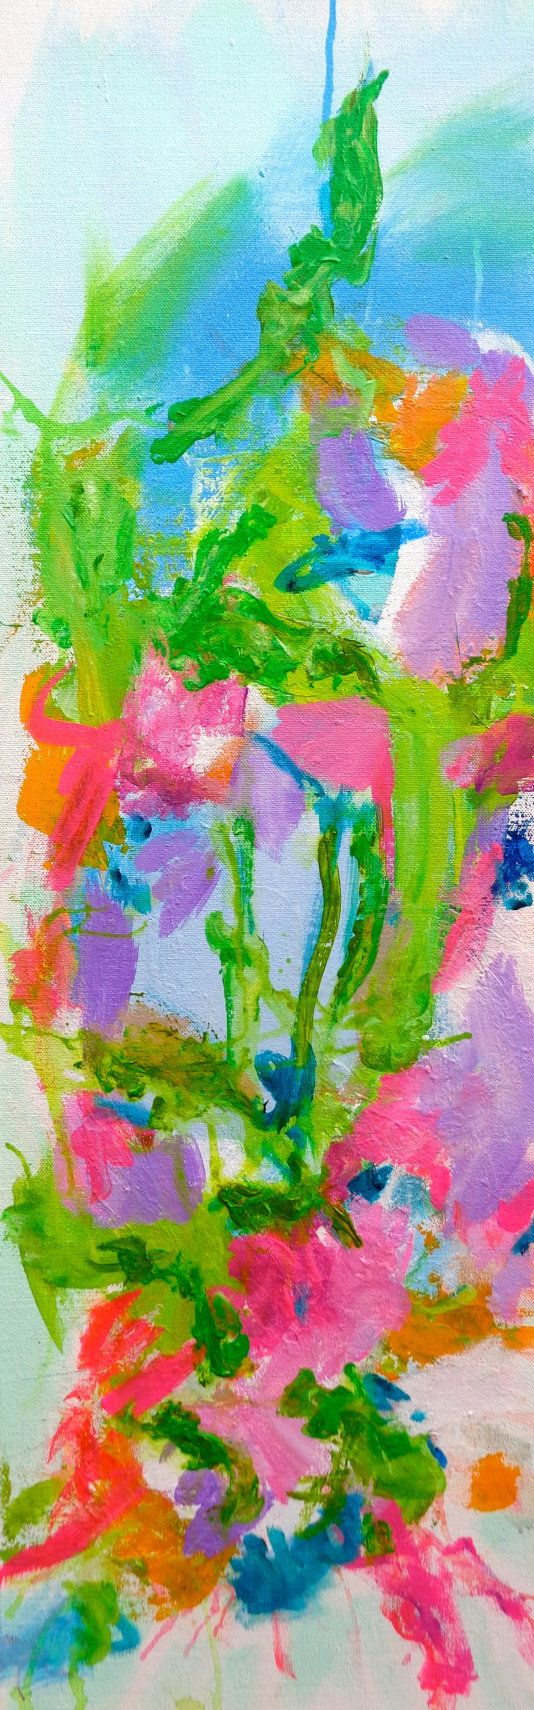 Abstract Floral Art Painting 12 X 24 Susan by susanskelleyart  SOLD